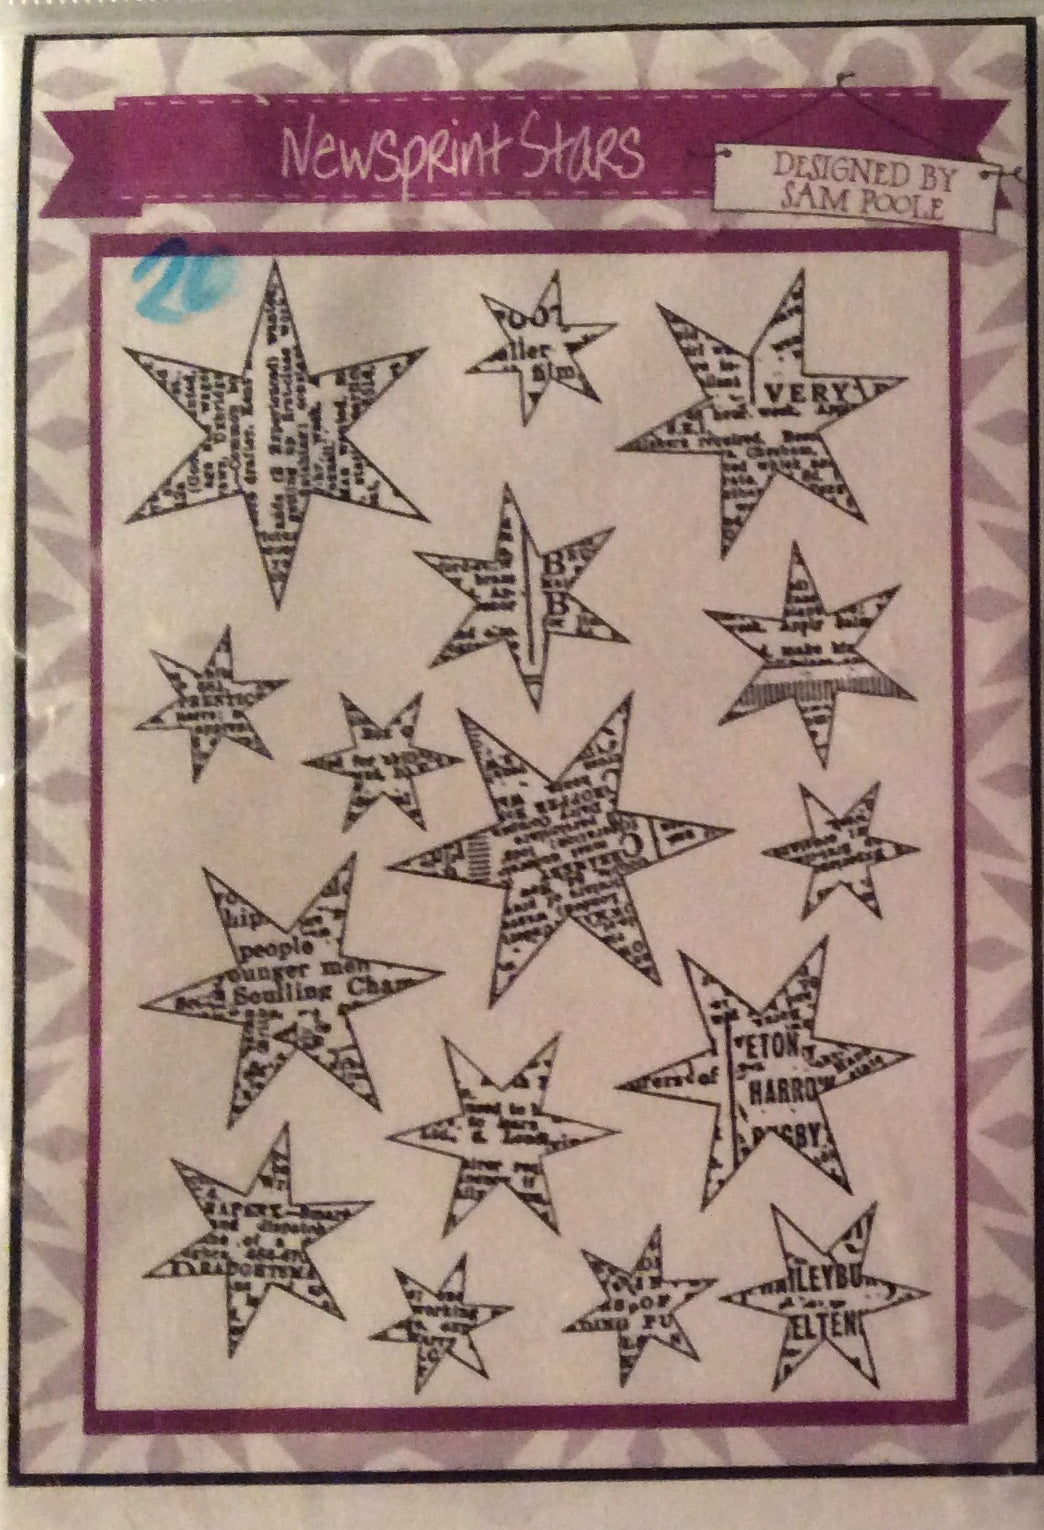 Creative Expressions Designed by Sam Poole - Rubber Stamp - Newsprint Stars A6